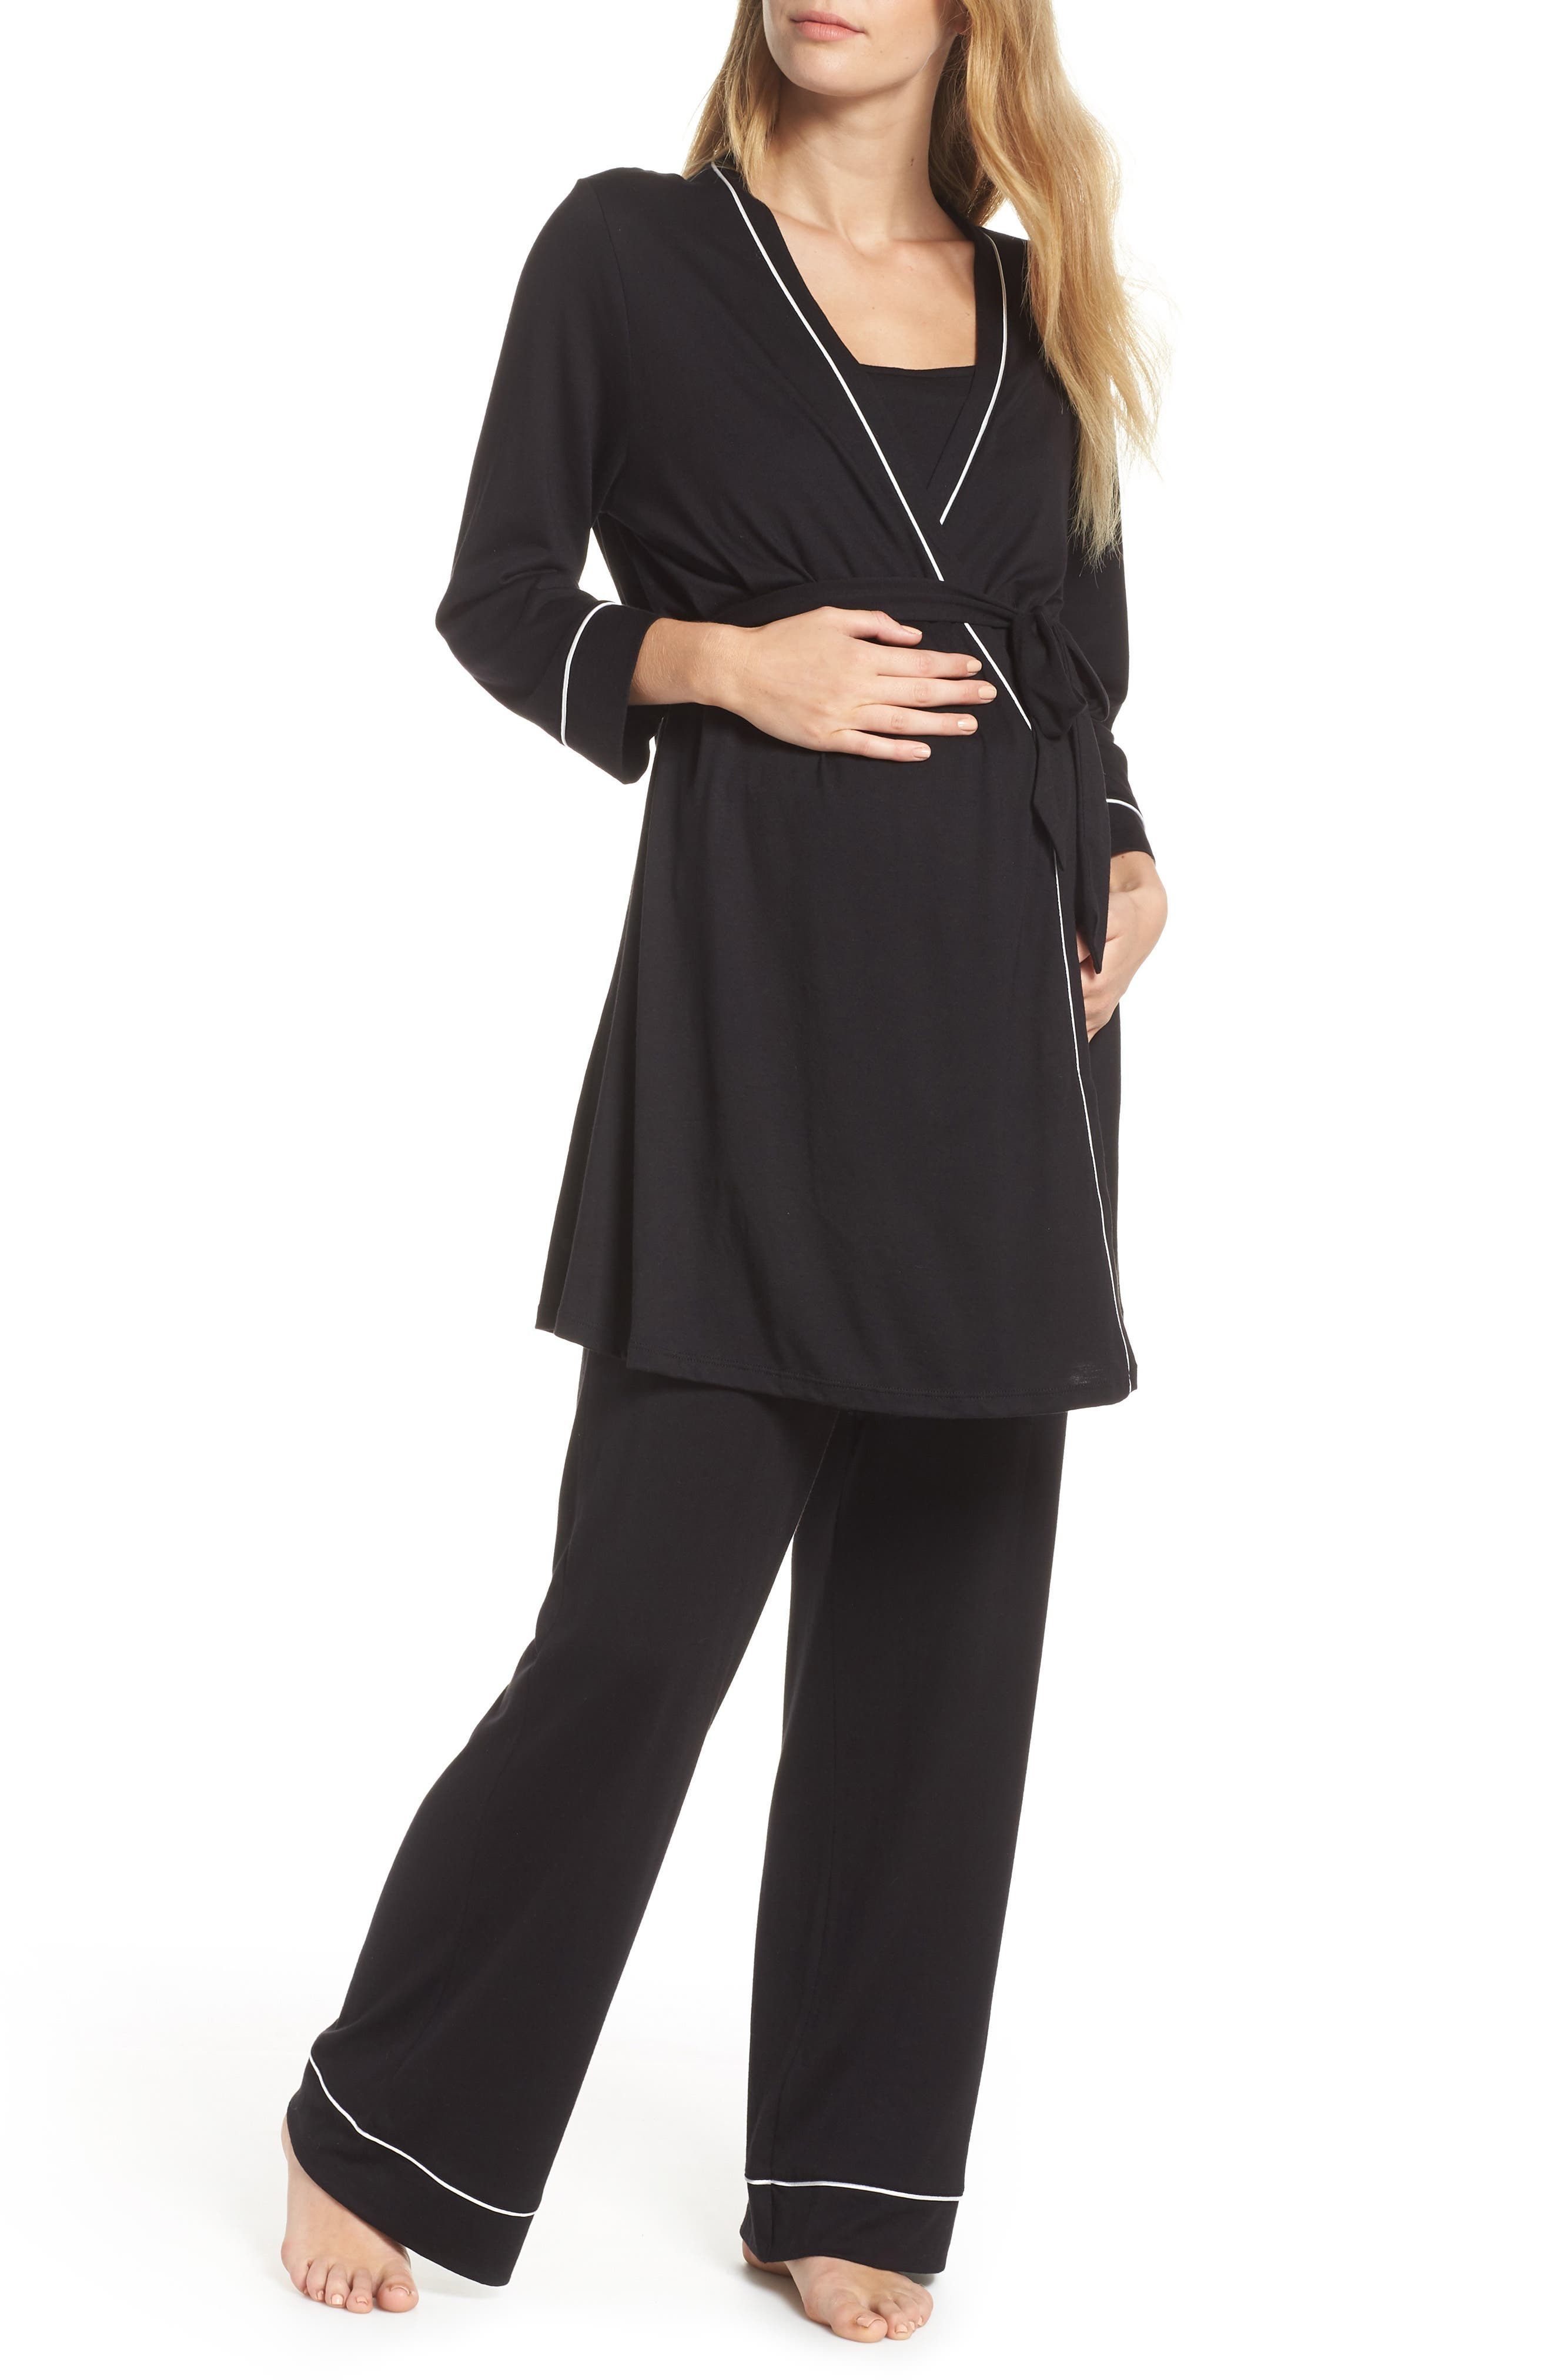 Let Me Sleep Maternity/Nursing Pajamas & Robe Set,                             Main thumbnail 1, color,                             BLACK/ IVORY